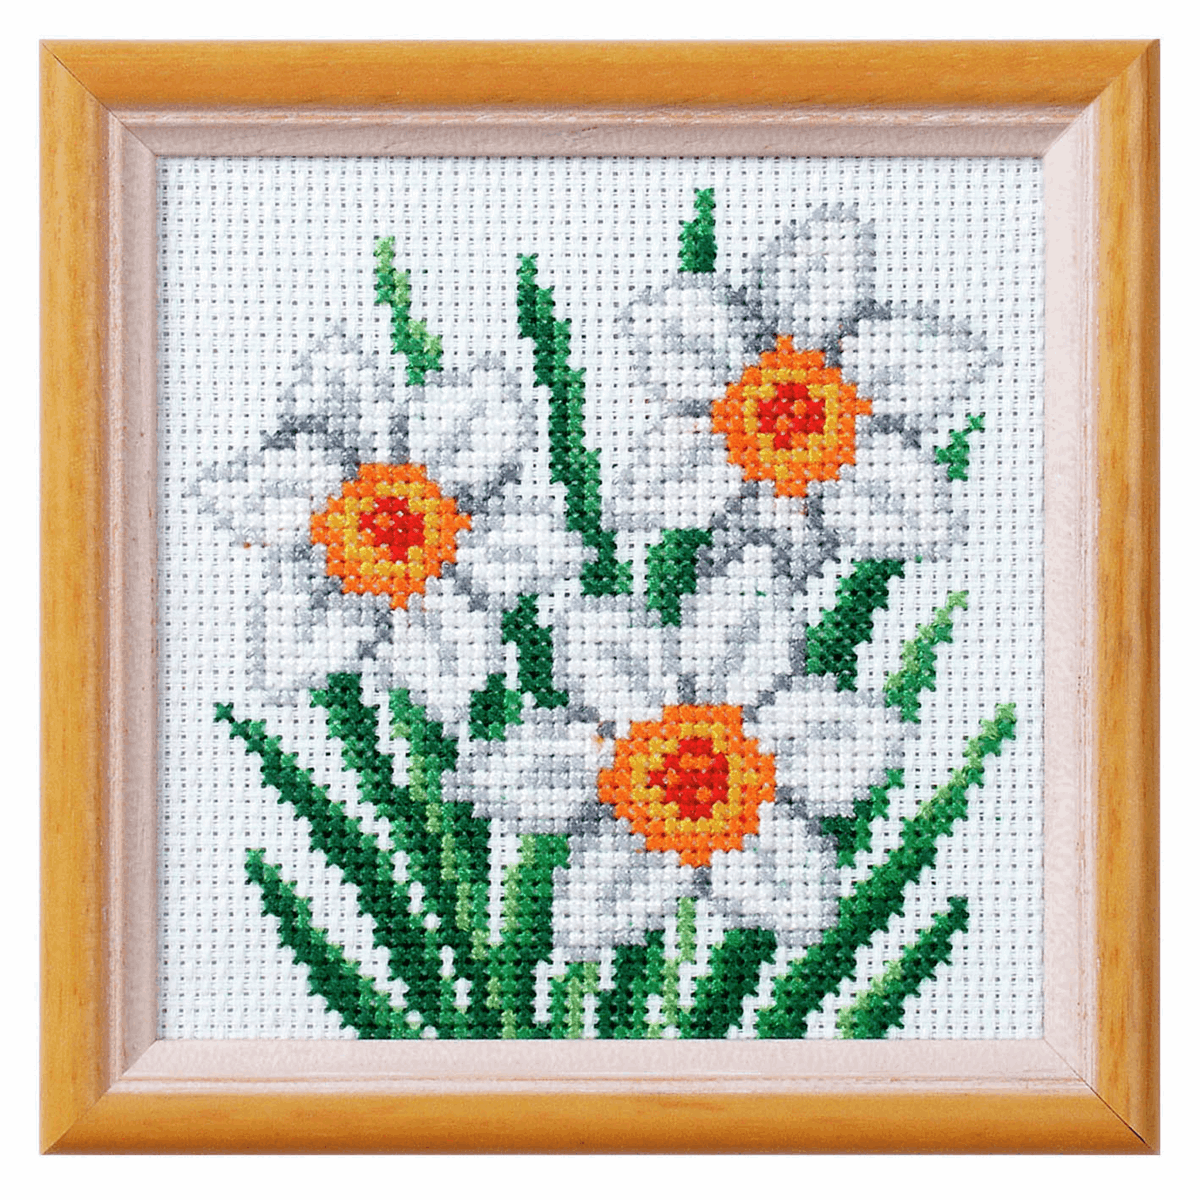 Narcissus Counted Cross stitch kit 11 x 11cm suitable for beginners